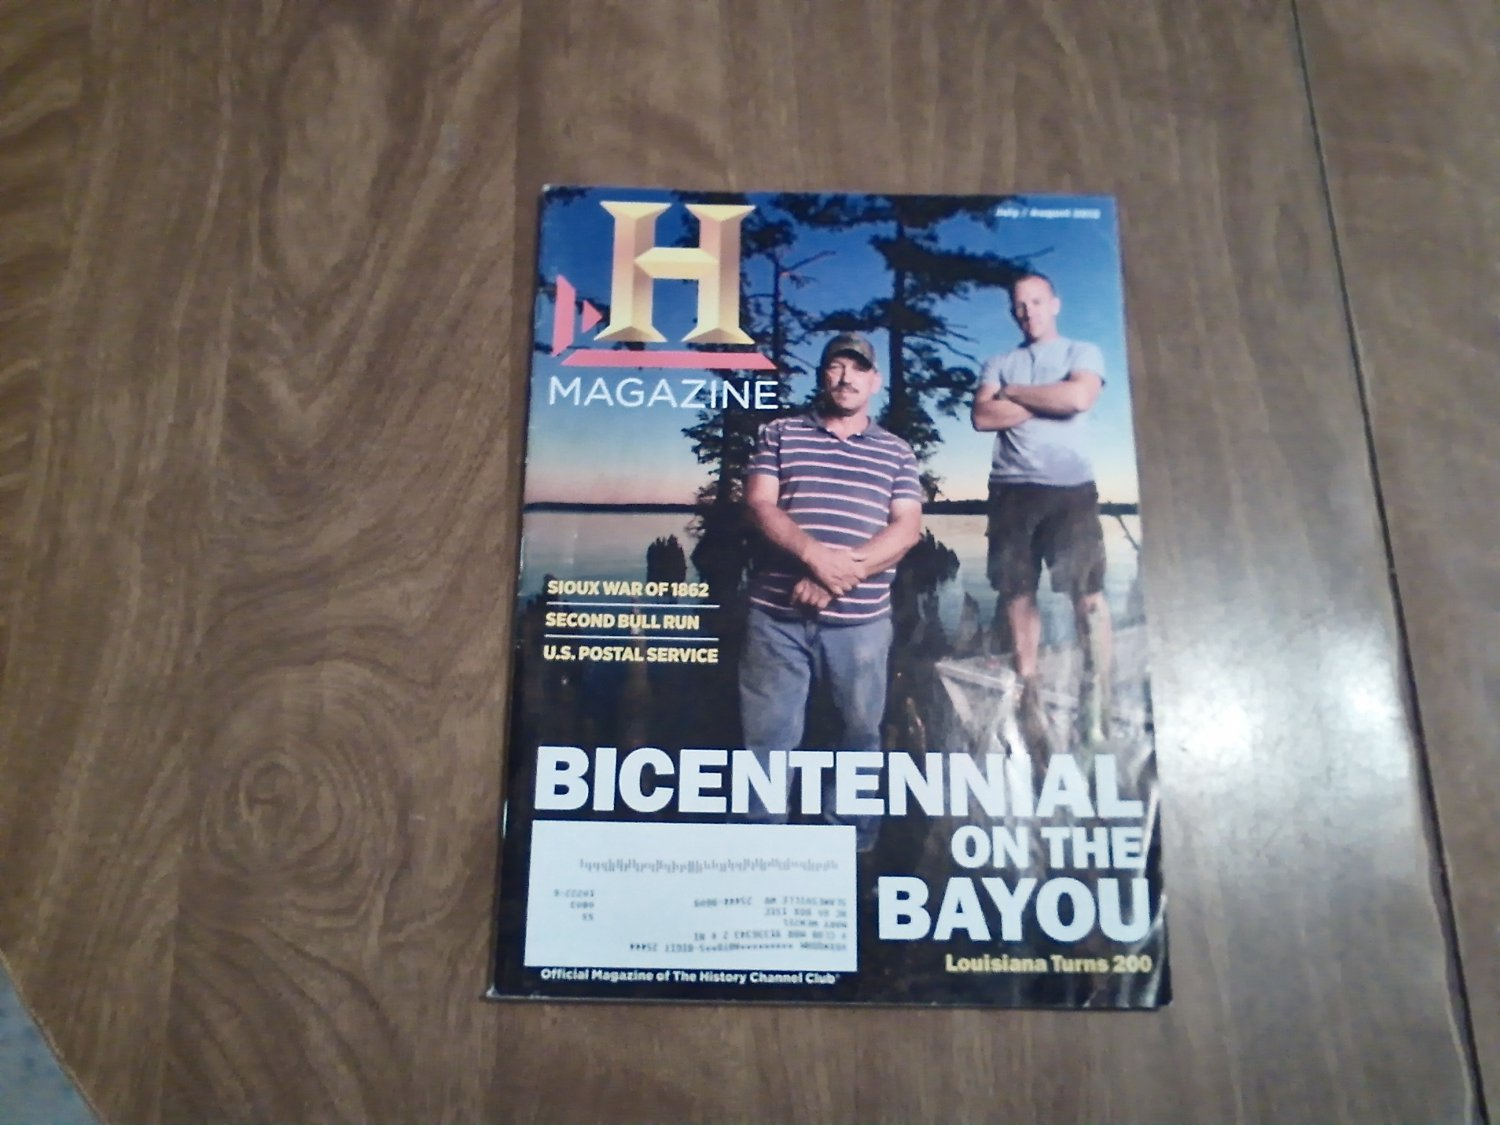 History Channel Magazine July / August 2012 Bicentennial on the Bayou Vol. 10 No. 4 (G4)